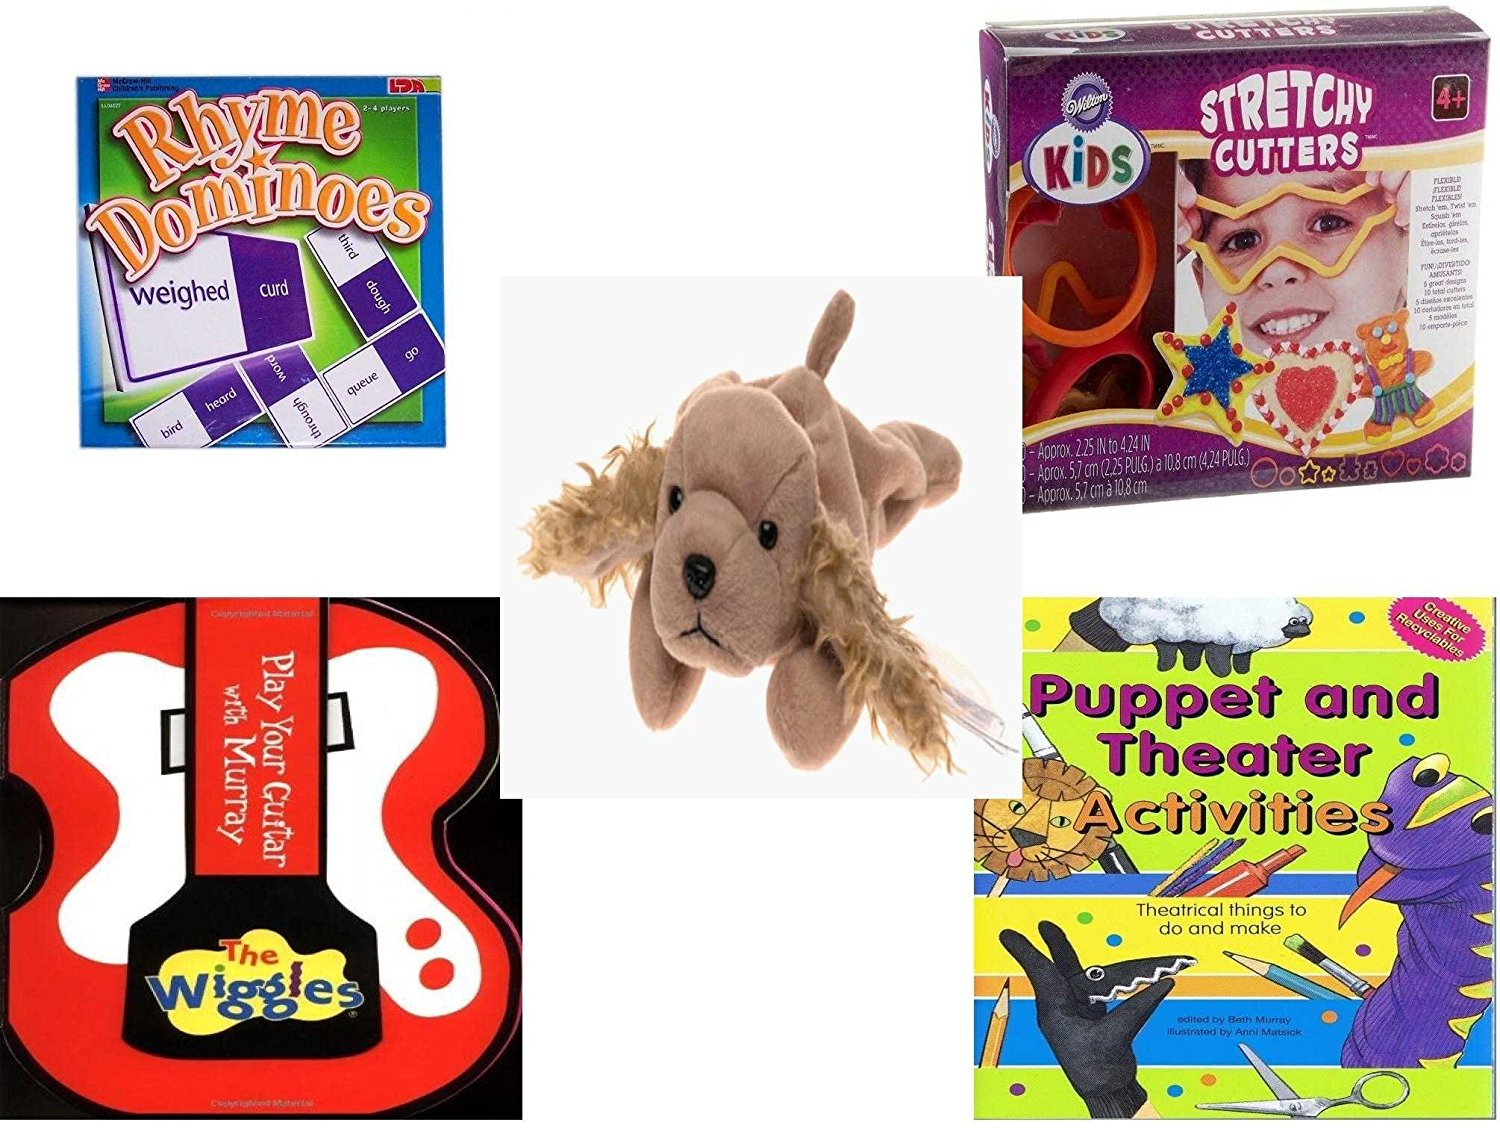 Children's Gift Bundle - Ages 3-5 [5 Piece] - Rhyme Dominoes Tile Game - Wilton Kids Stretchy Silicone Cookie Cutter Set, 10-Piece - Ty Beanie Baby - Spunky the Cocker Spaniel Dog - The Wiggles Play